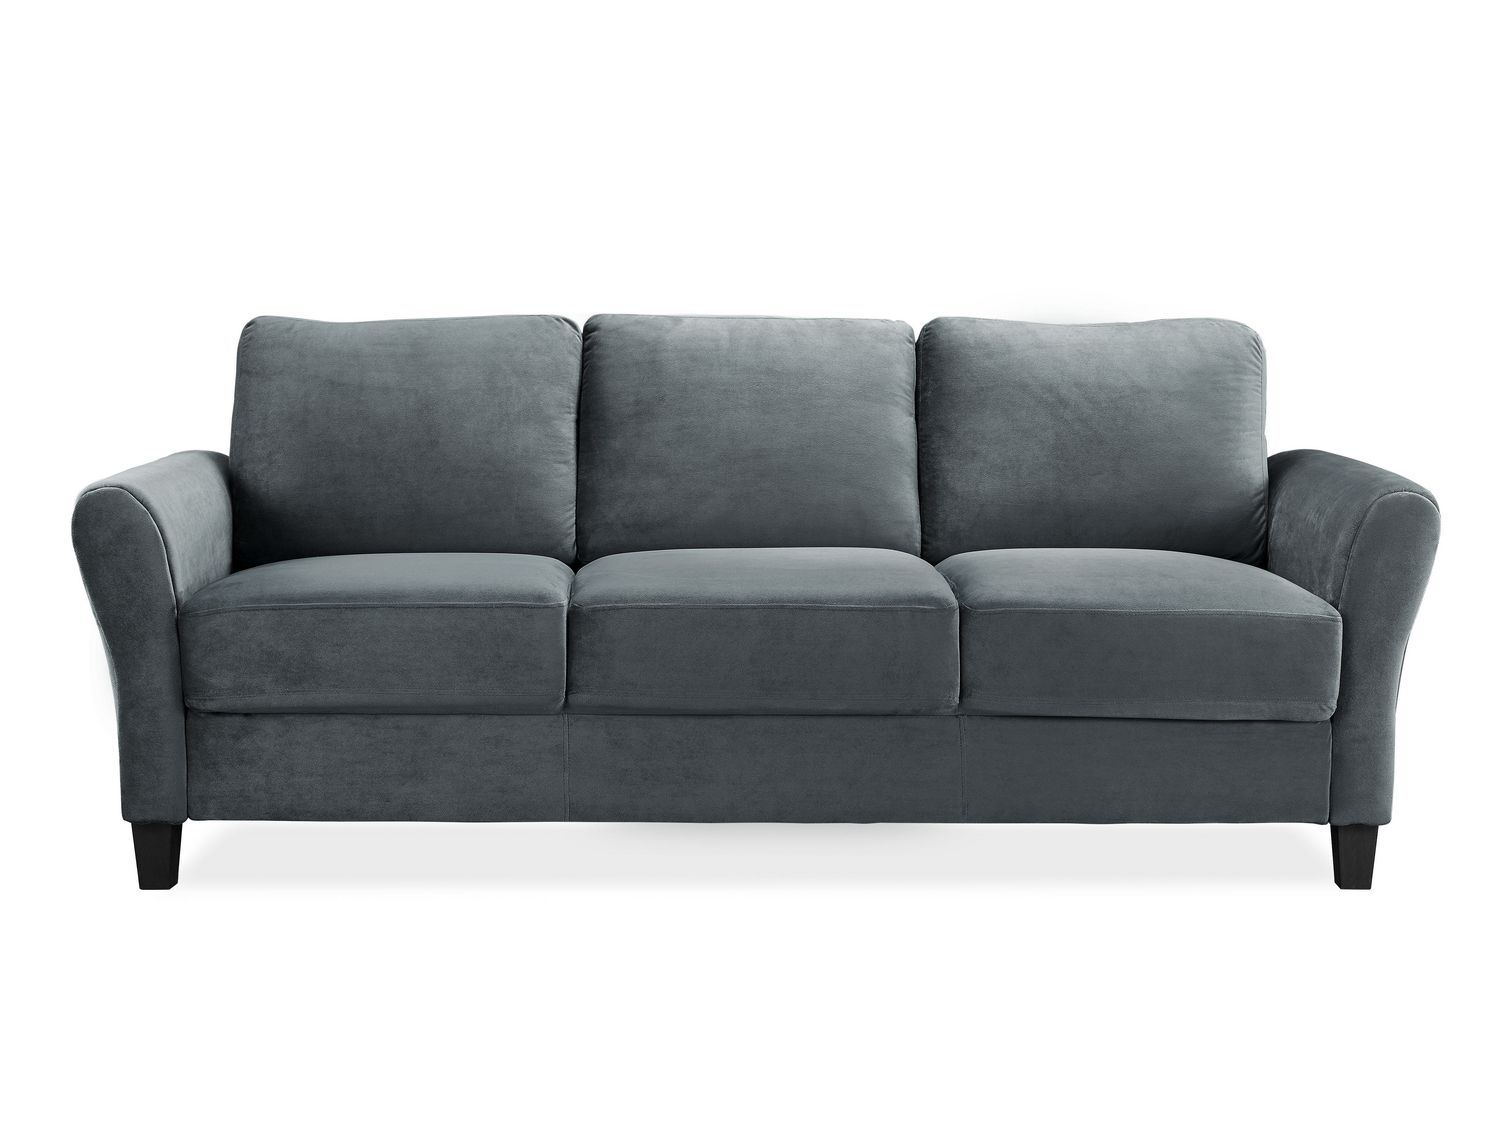 Corduroy 3 Seater Sofa Lifestyle Solutions Alexa Ready To Assemble Sofa